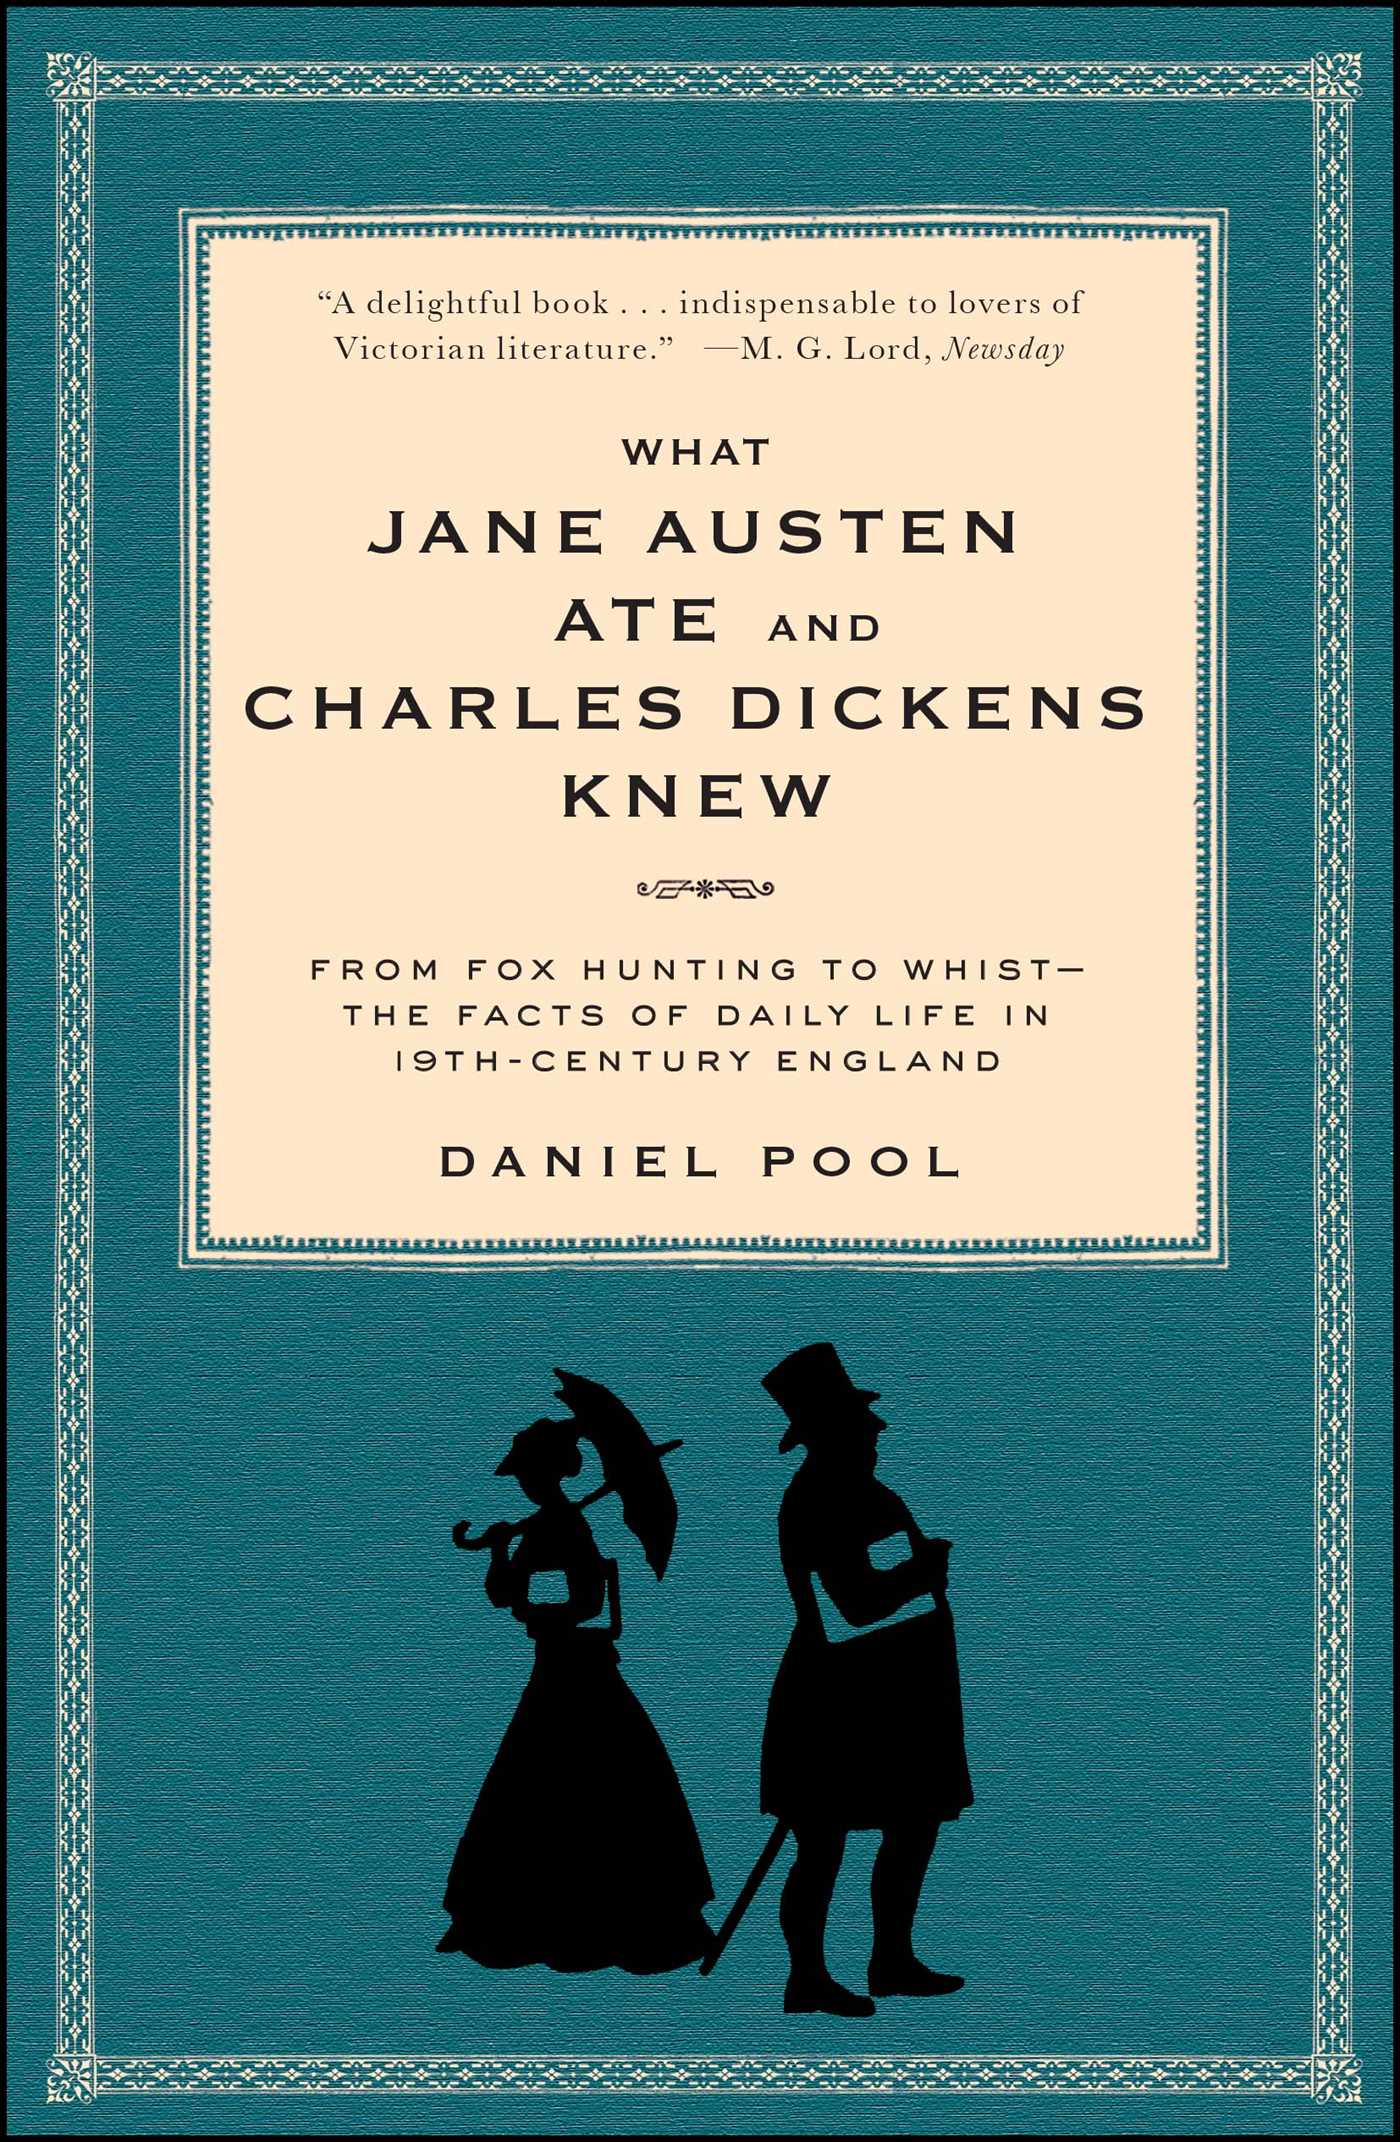 What-jane-austen-ate-and-charles-dickens-knew-9780671882365_hr